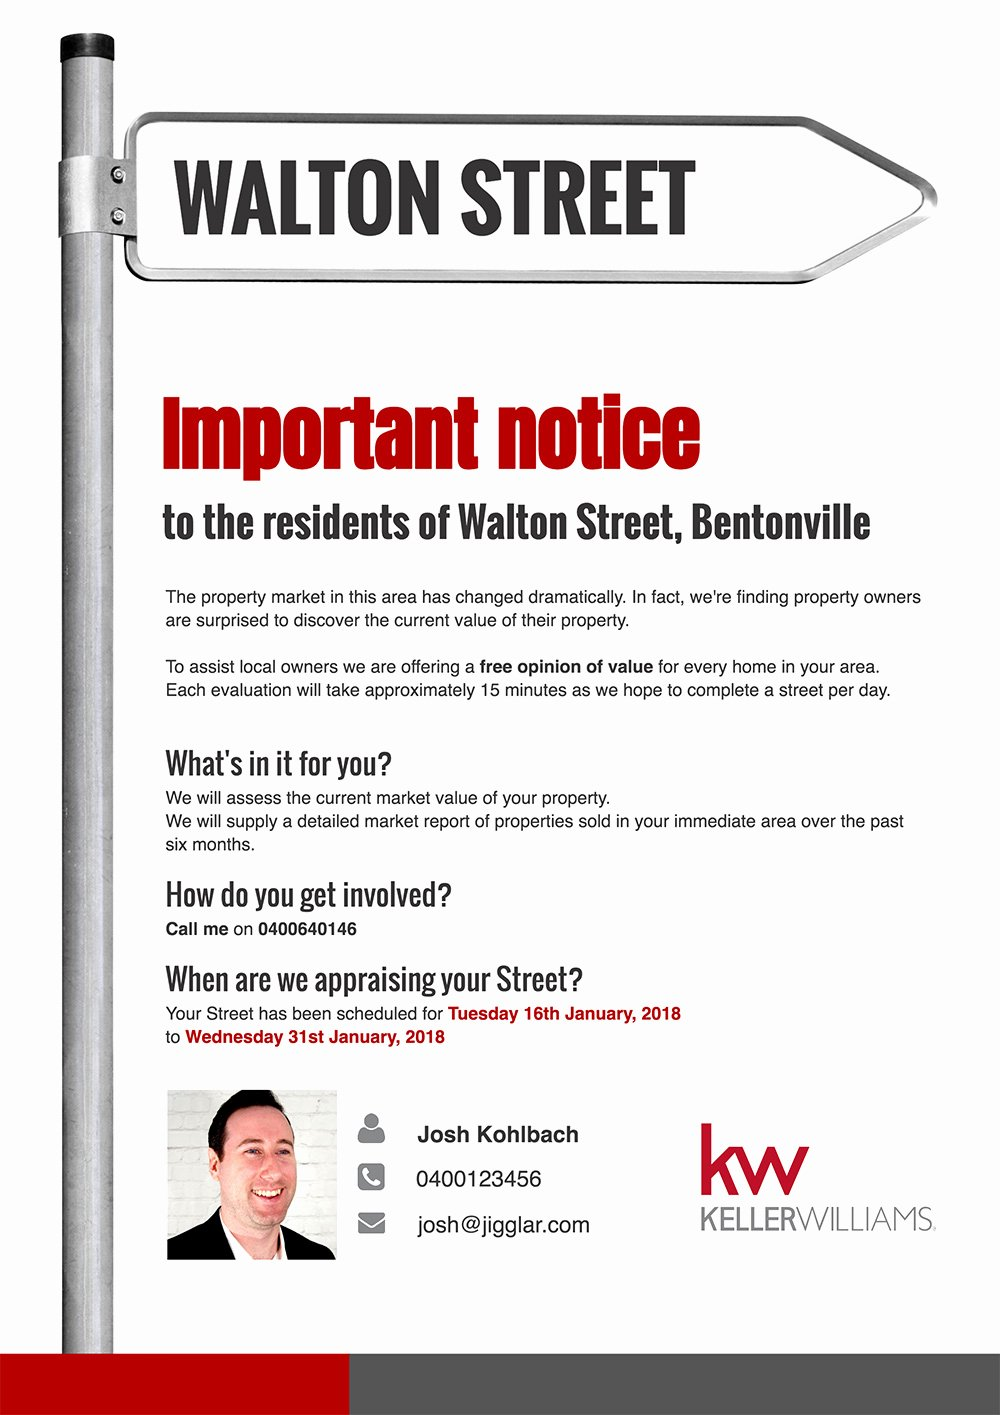 Real Estate Flyer Ideas Awesome 5 Real Estate Letterbox Drop Ideas that Get Massive